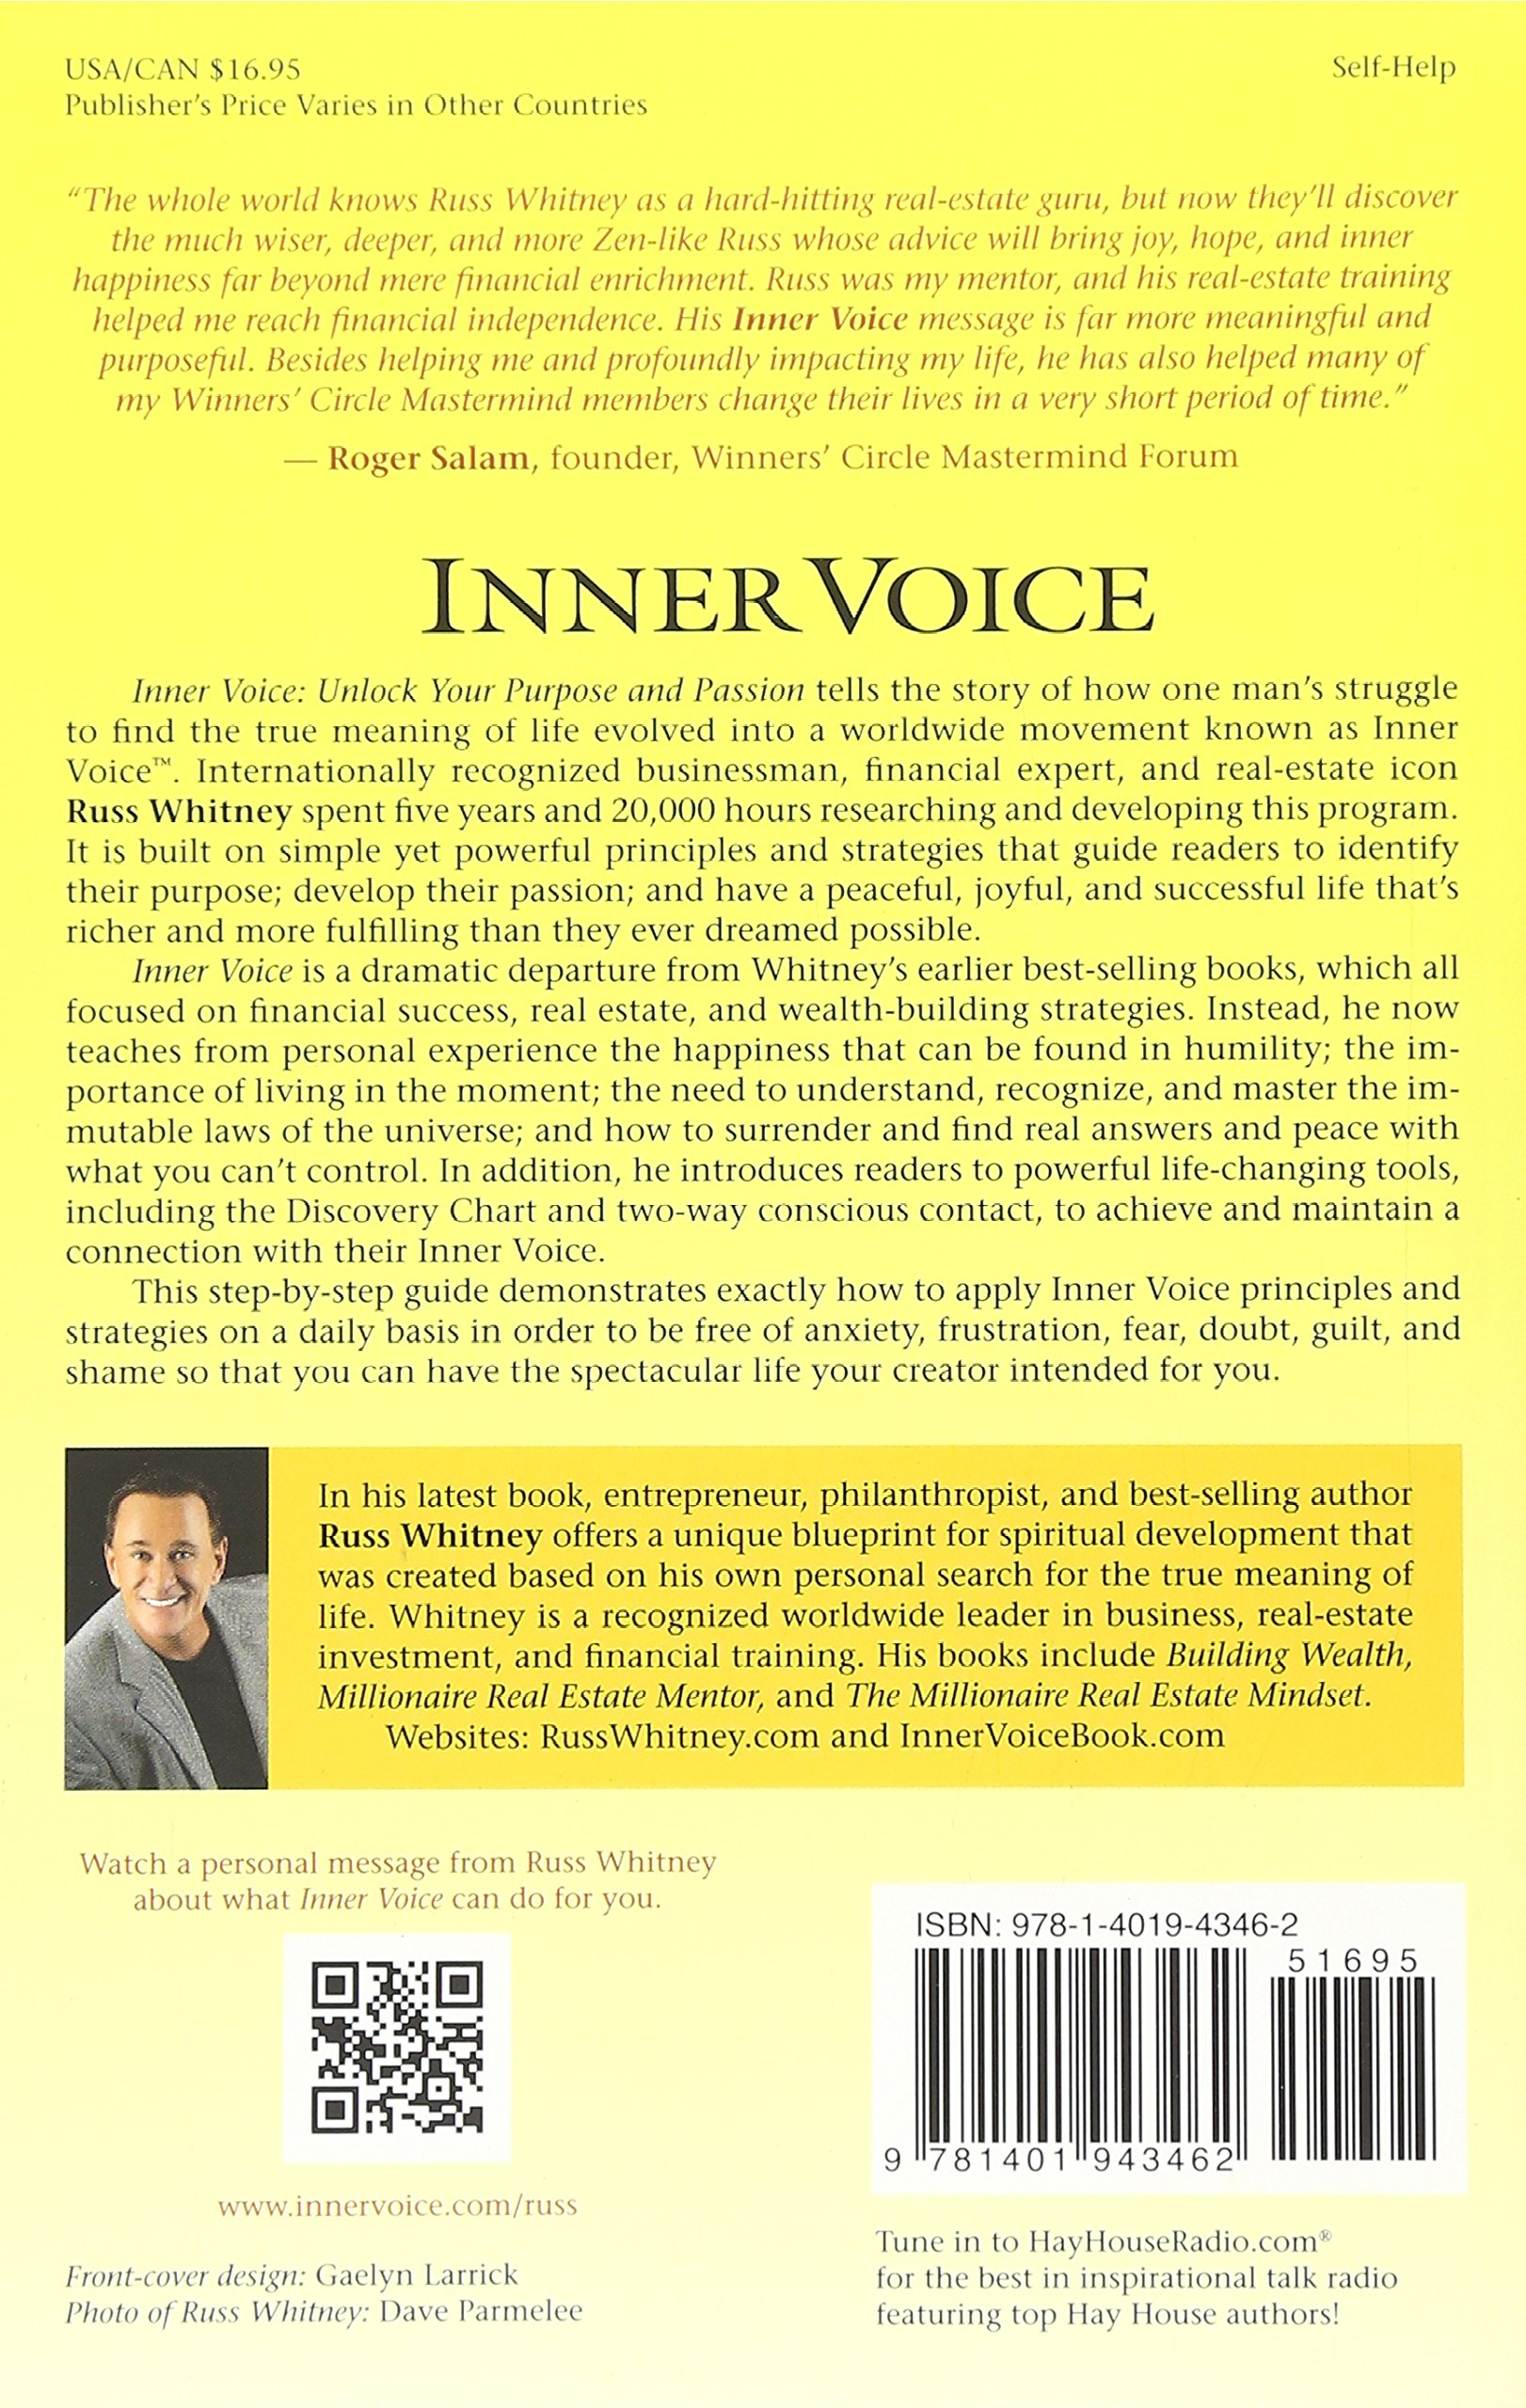 Inner voice unlock your purpose and passion russ whitney inner voice unlock your purpose and passion russ whitney 9781401943462 amazon books malvernweather Gallery